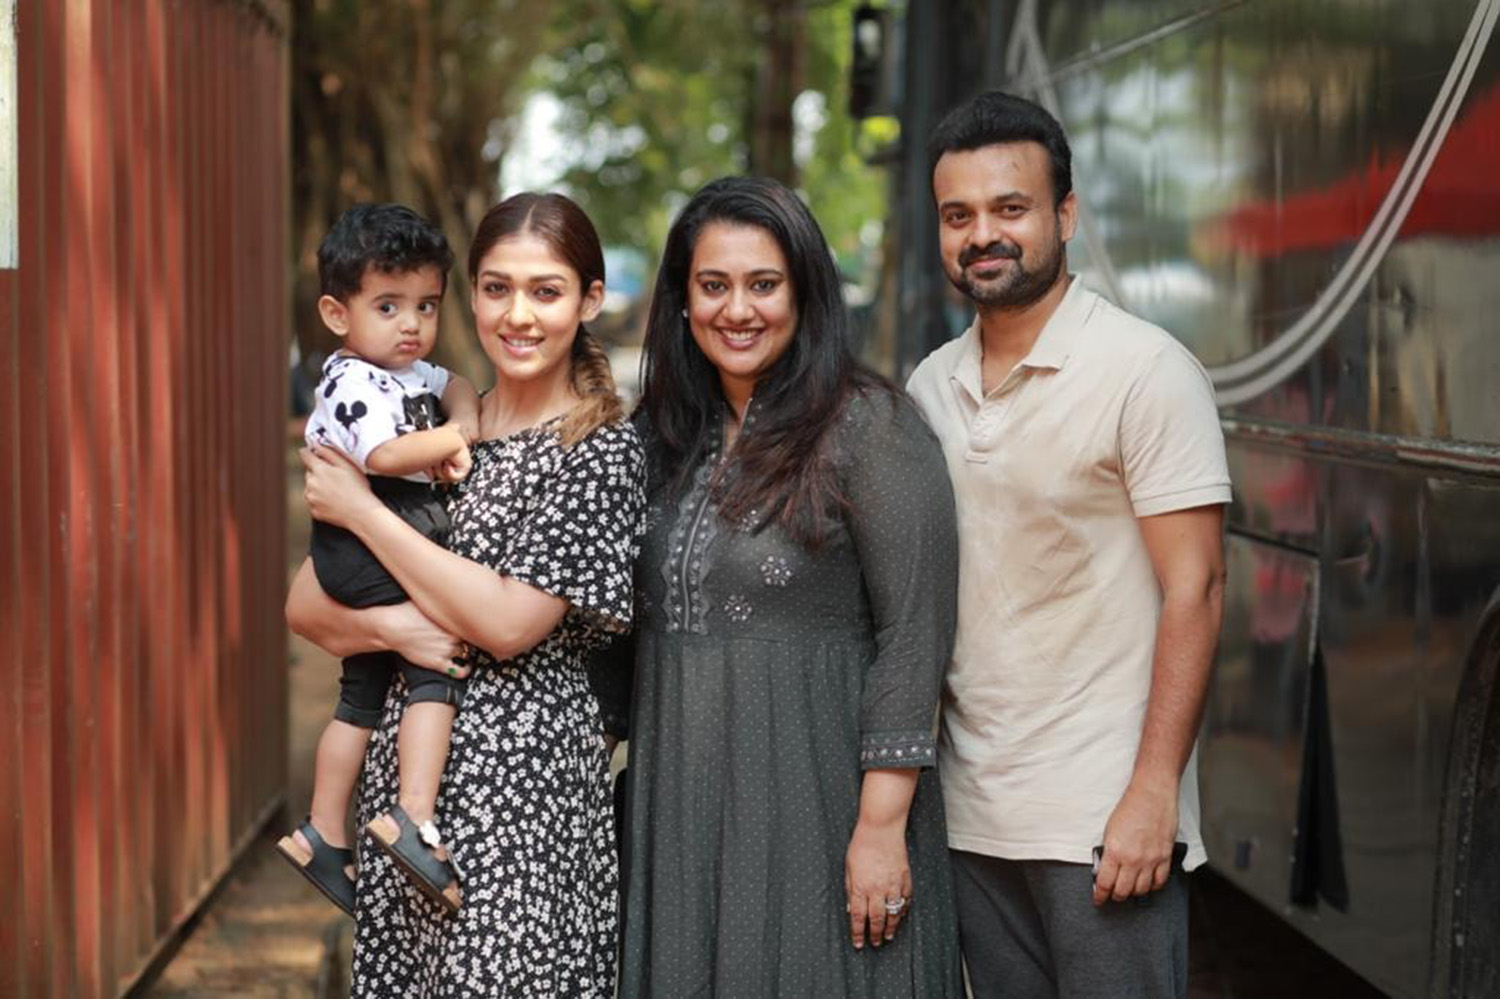 kunchacko boban family with nayanthara,kunchacko boban family picture with nayanthara,kunchacko boban family with nayanthara nizhal movie location,nizhal malayalam movie location image,nayanthara latest pic,kunchacko boban latest news